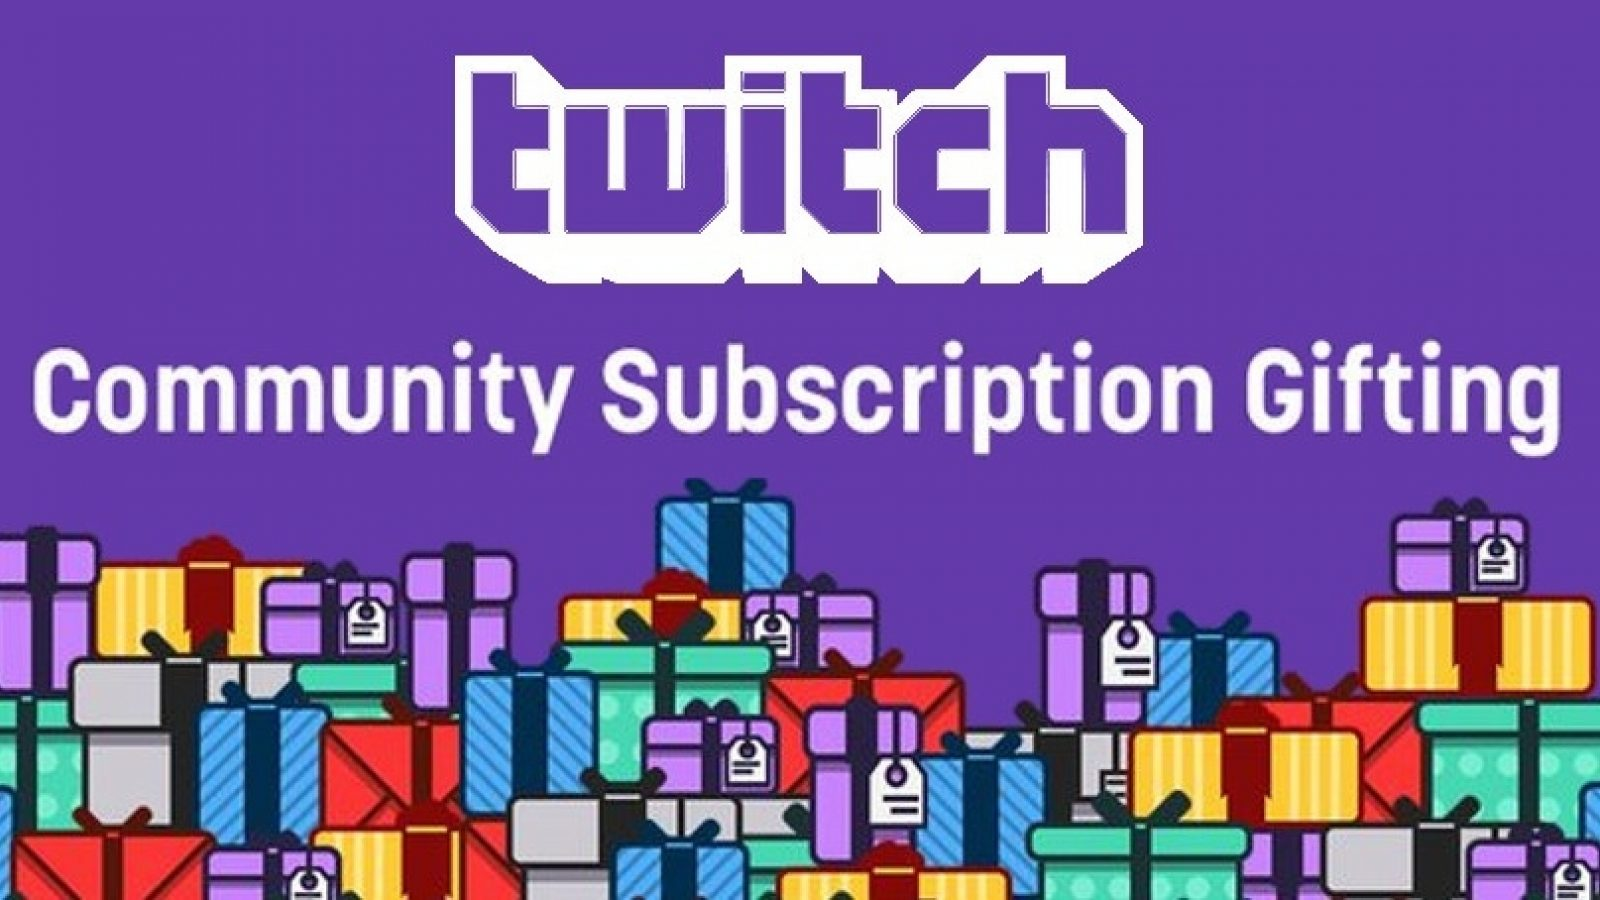 Twitch Gift Subscriptions 20 gift subscriptions 2019